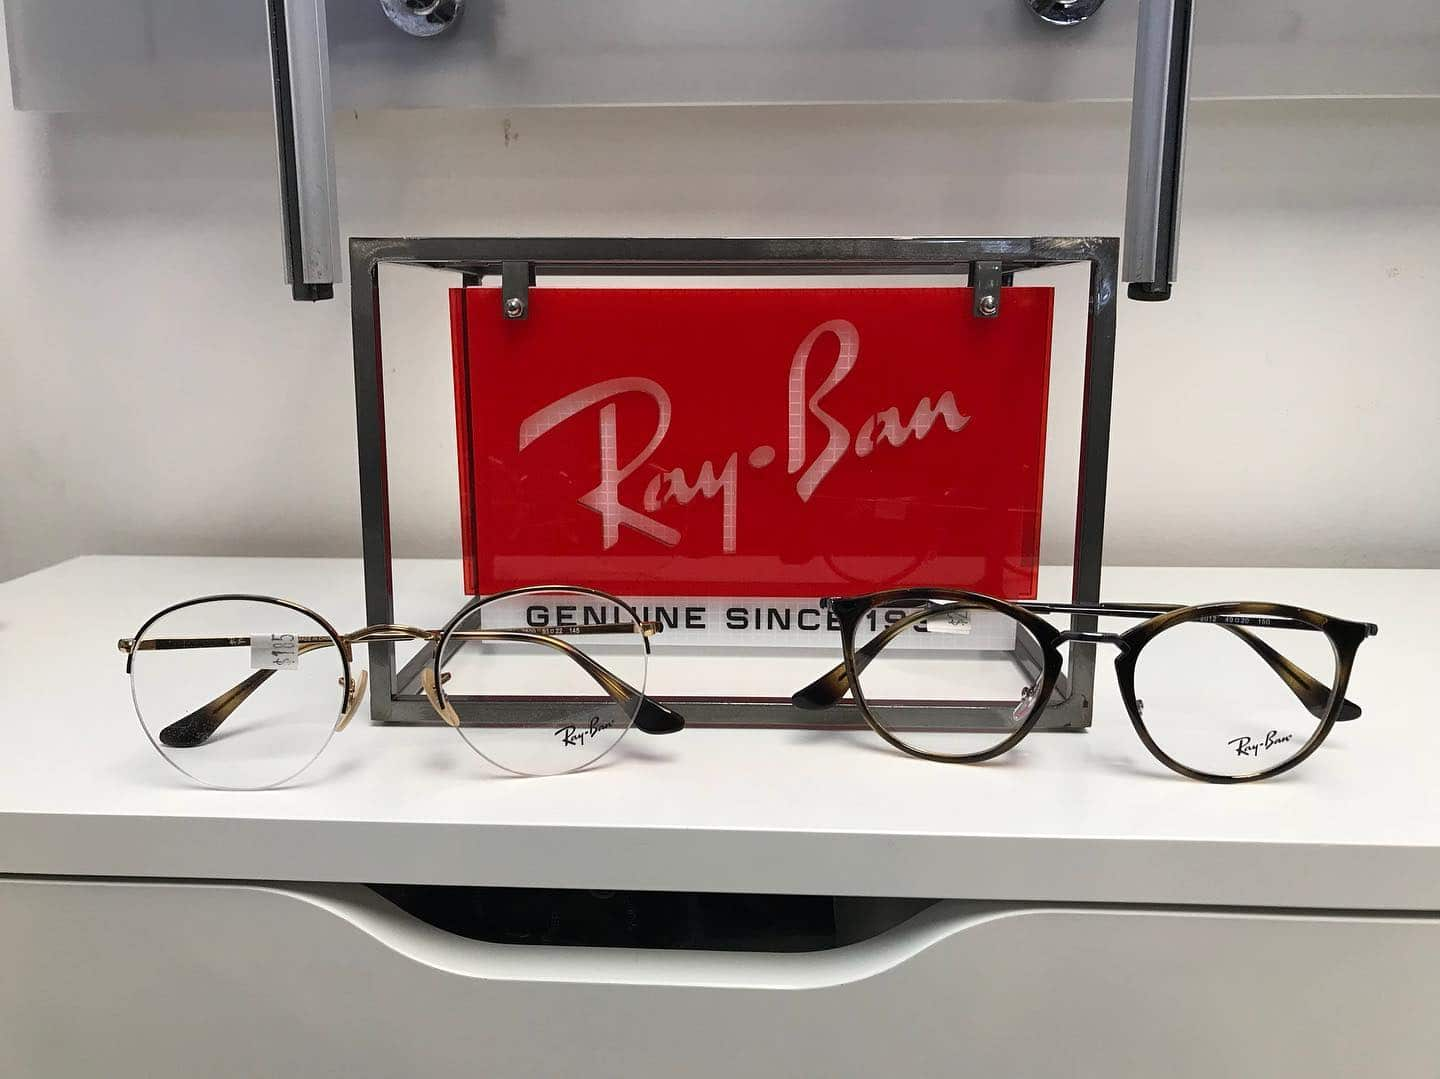 For the month of January save $100 when you purchase new frame and lenses at both our locations! @rayban #eyepractice #rockwoodoptometrist #guelphoptometrist #rockwoodoptometry #guelphoptometry #wintersale